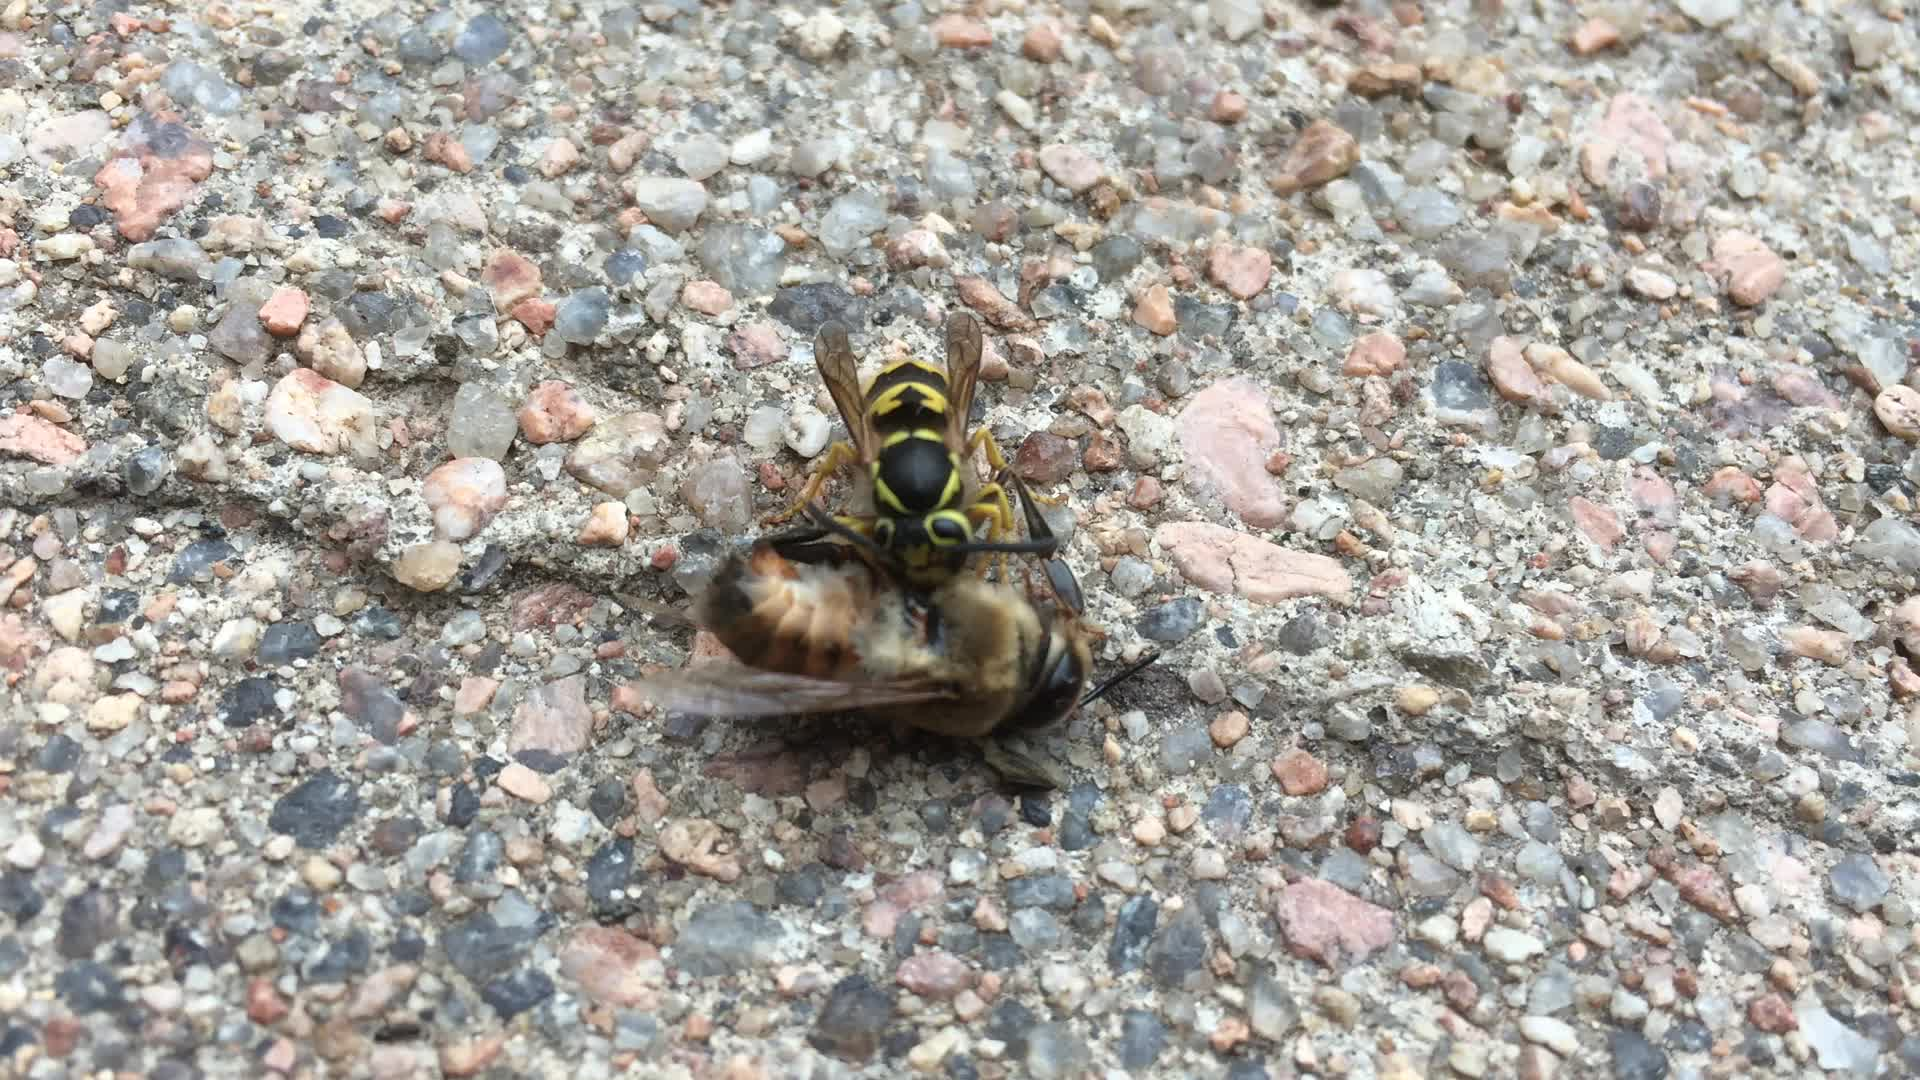 A wasp devouring a bee